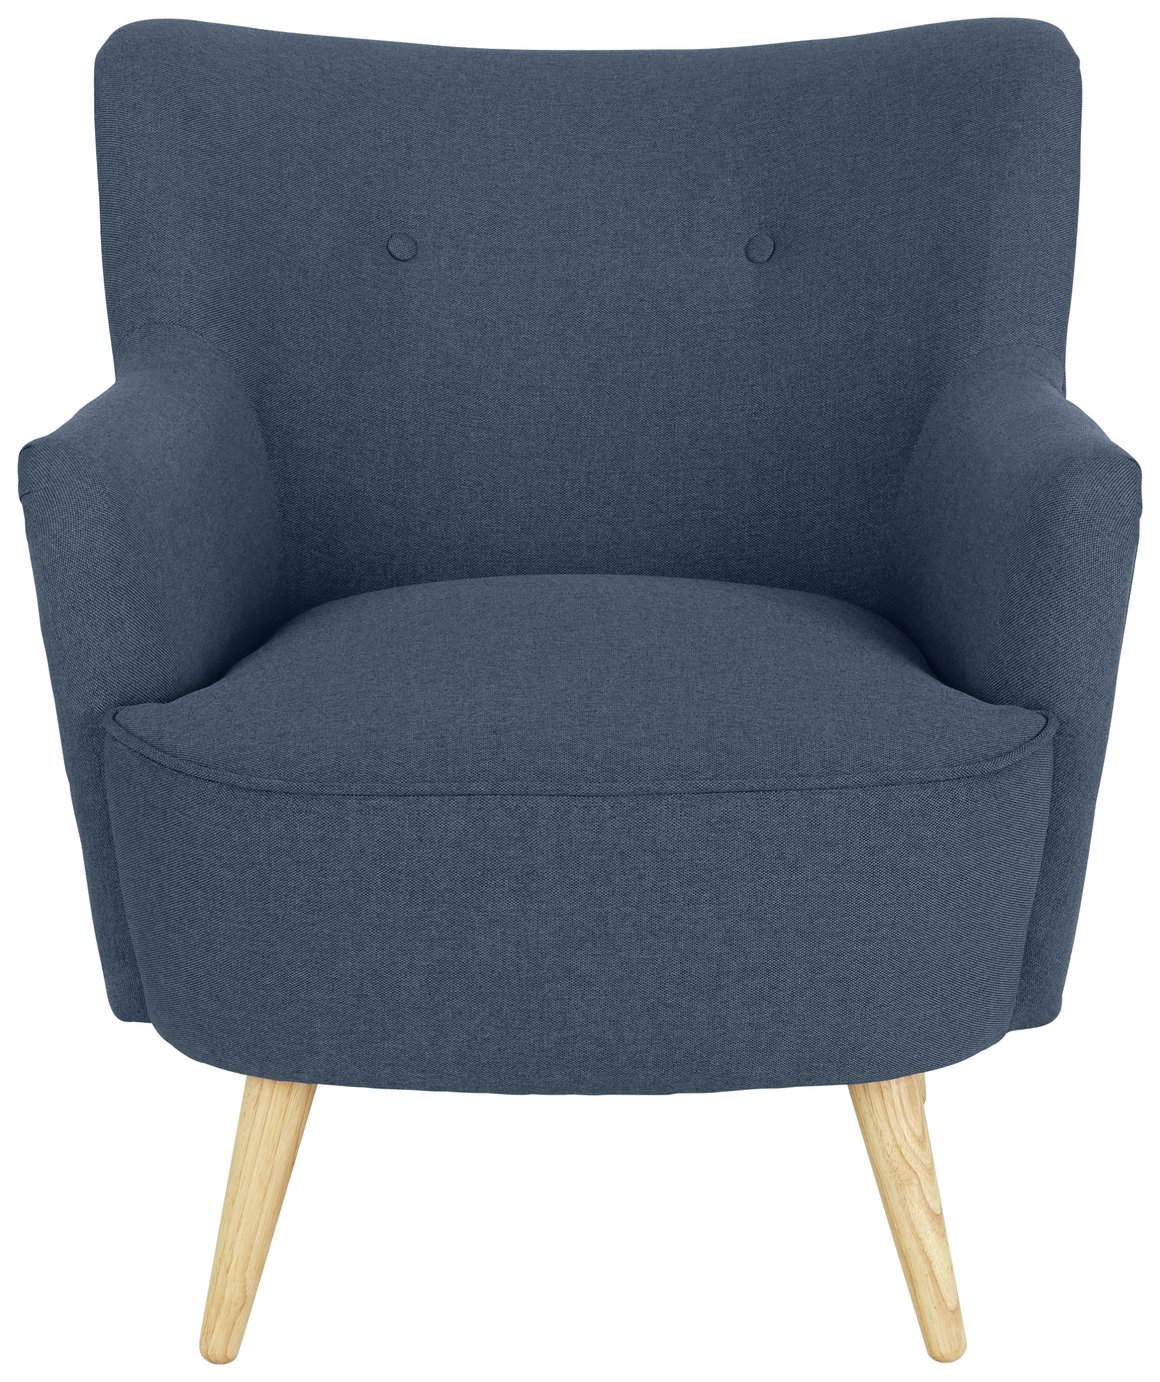 Habitat Franze Fabric Armchair - Denim Blue